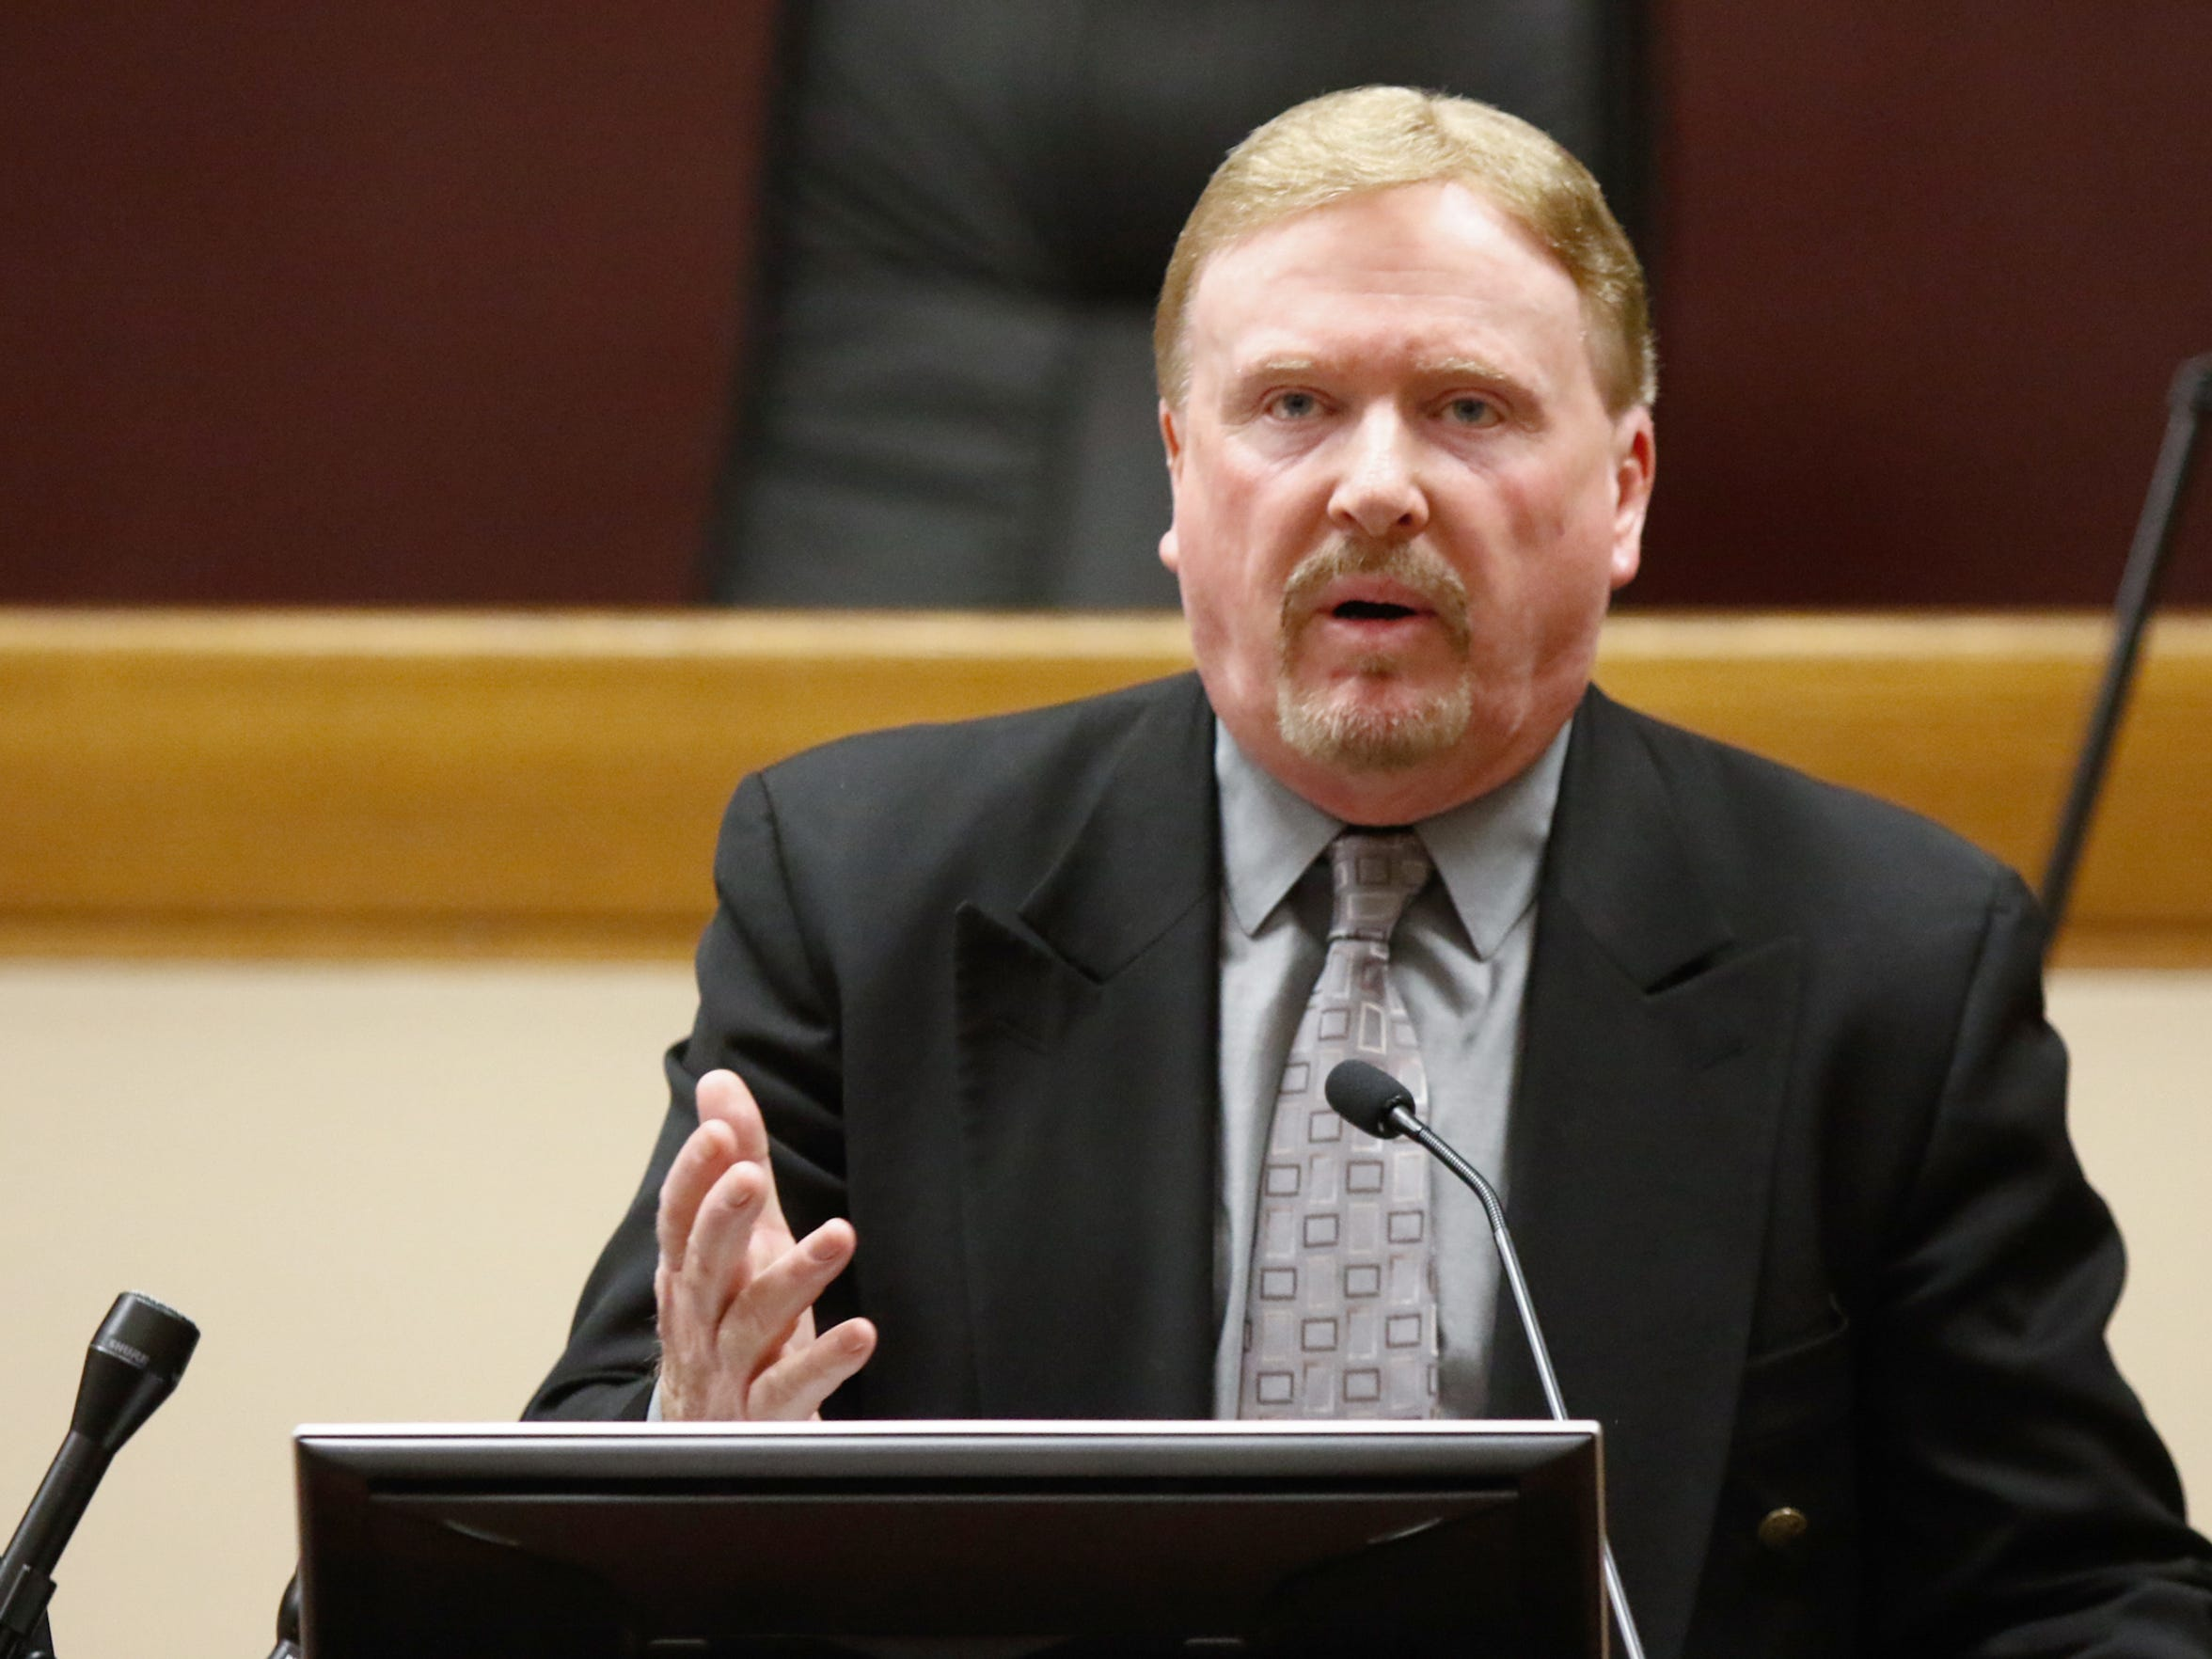 James Hunt, special agent in charge, Drug Enforcement Administration, New York Division, during a drug-crisis forum at Pace University Law School in White Plains on Dec. 1, 2016.